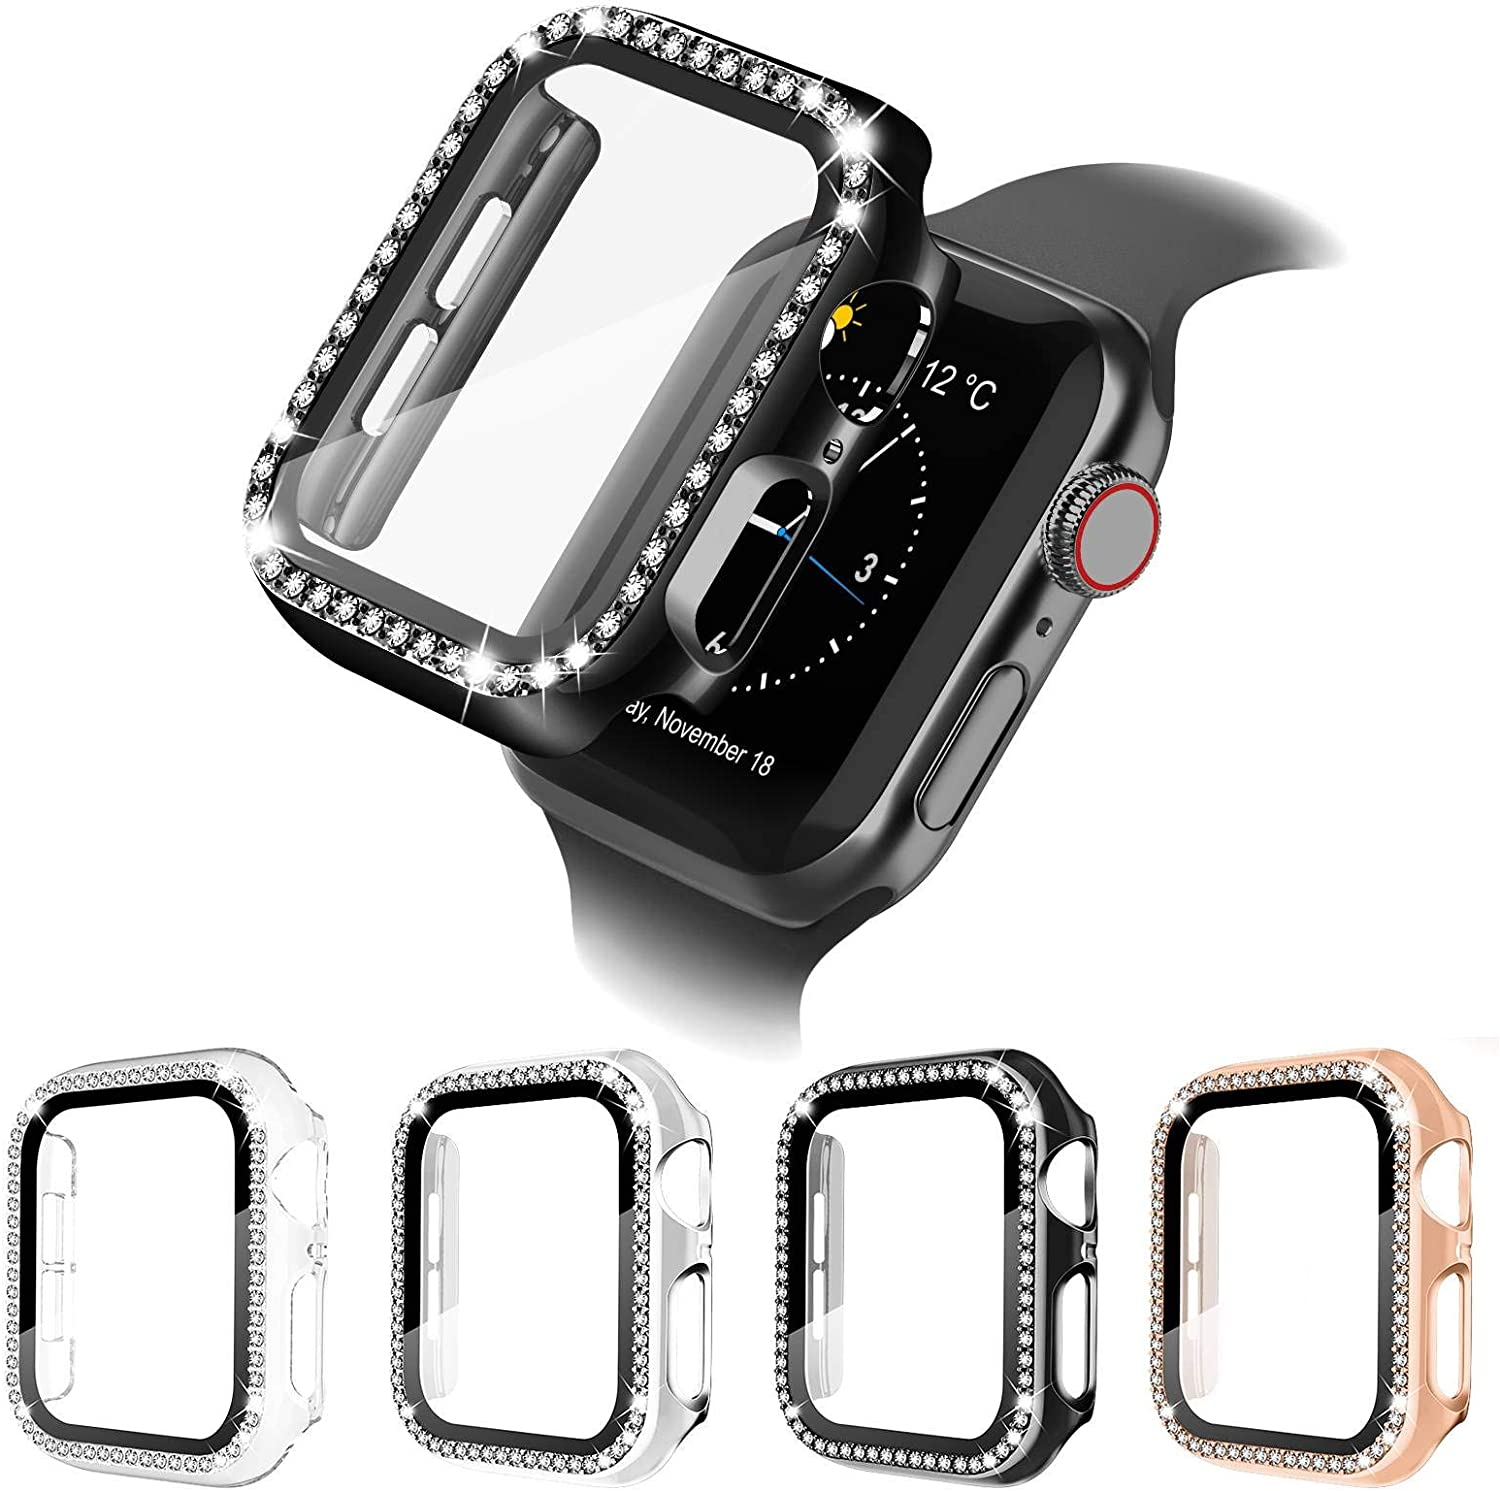 4 Pack Apple Watch Case with HD Tempered Glass Screen Protector for Apple Watch 38mm Series 3/2/1, Full Cover Bling Diamond Crystal Rhinestone Protective Case Ultra-Thin Bumper for Women Girls iWatch